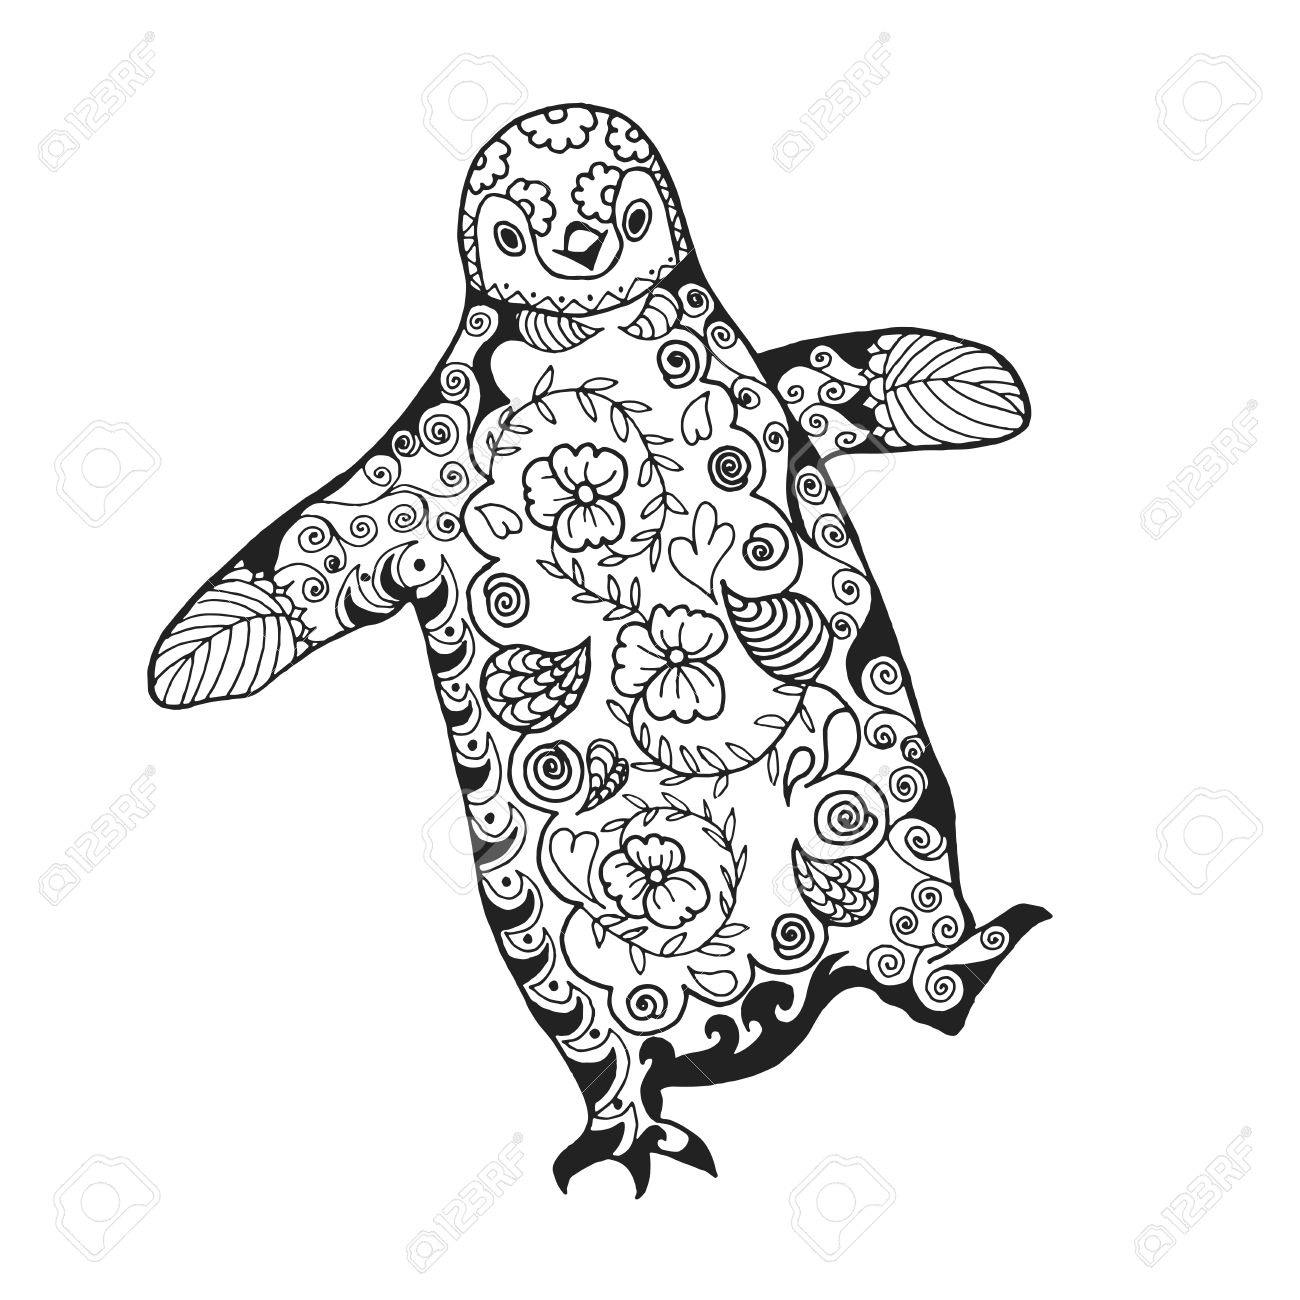 cute penguin antistress coloring page black white hand